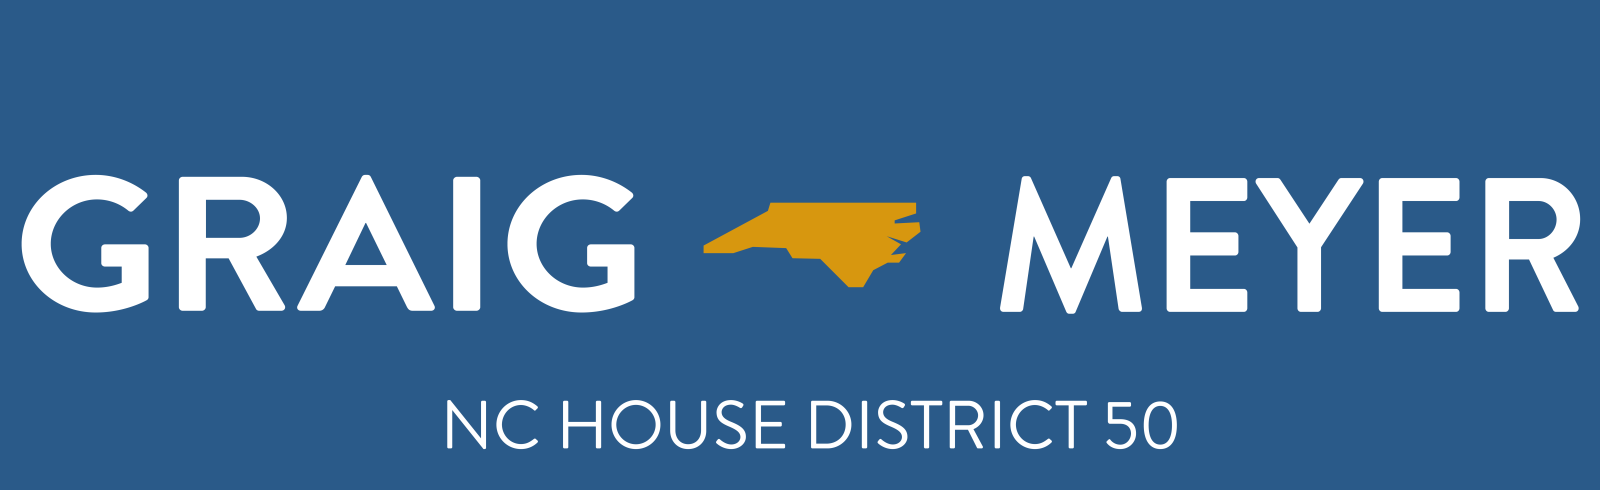 Graig Meyer for NC House